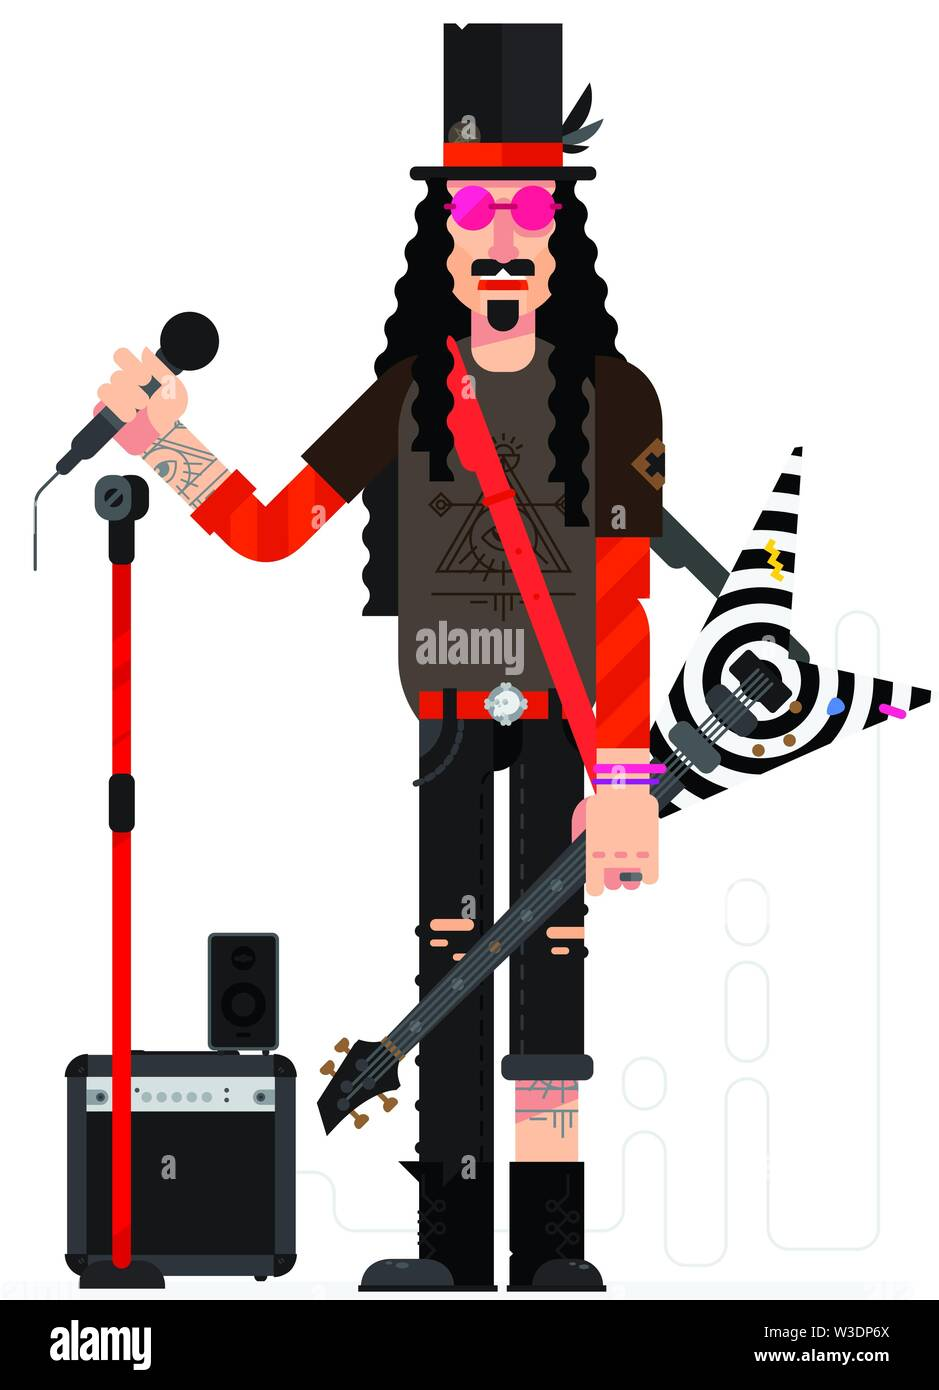 Rock star in flat technique isolated on white background. Musician with a guitar and a microphone sings. Illustration of a musician with a hat and tat - Stock Vector